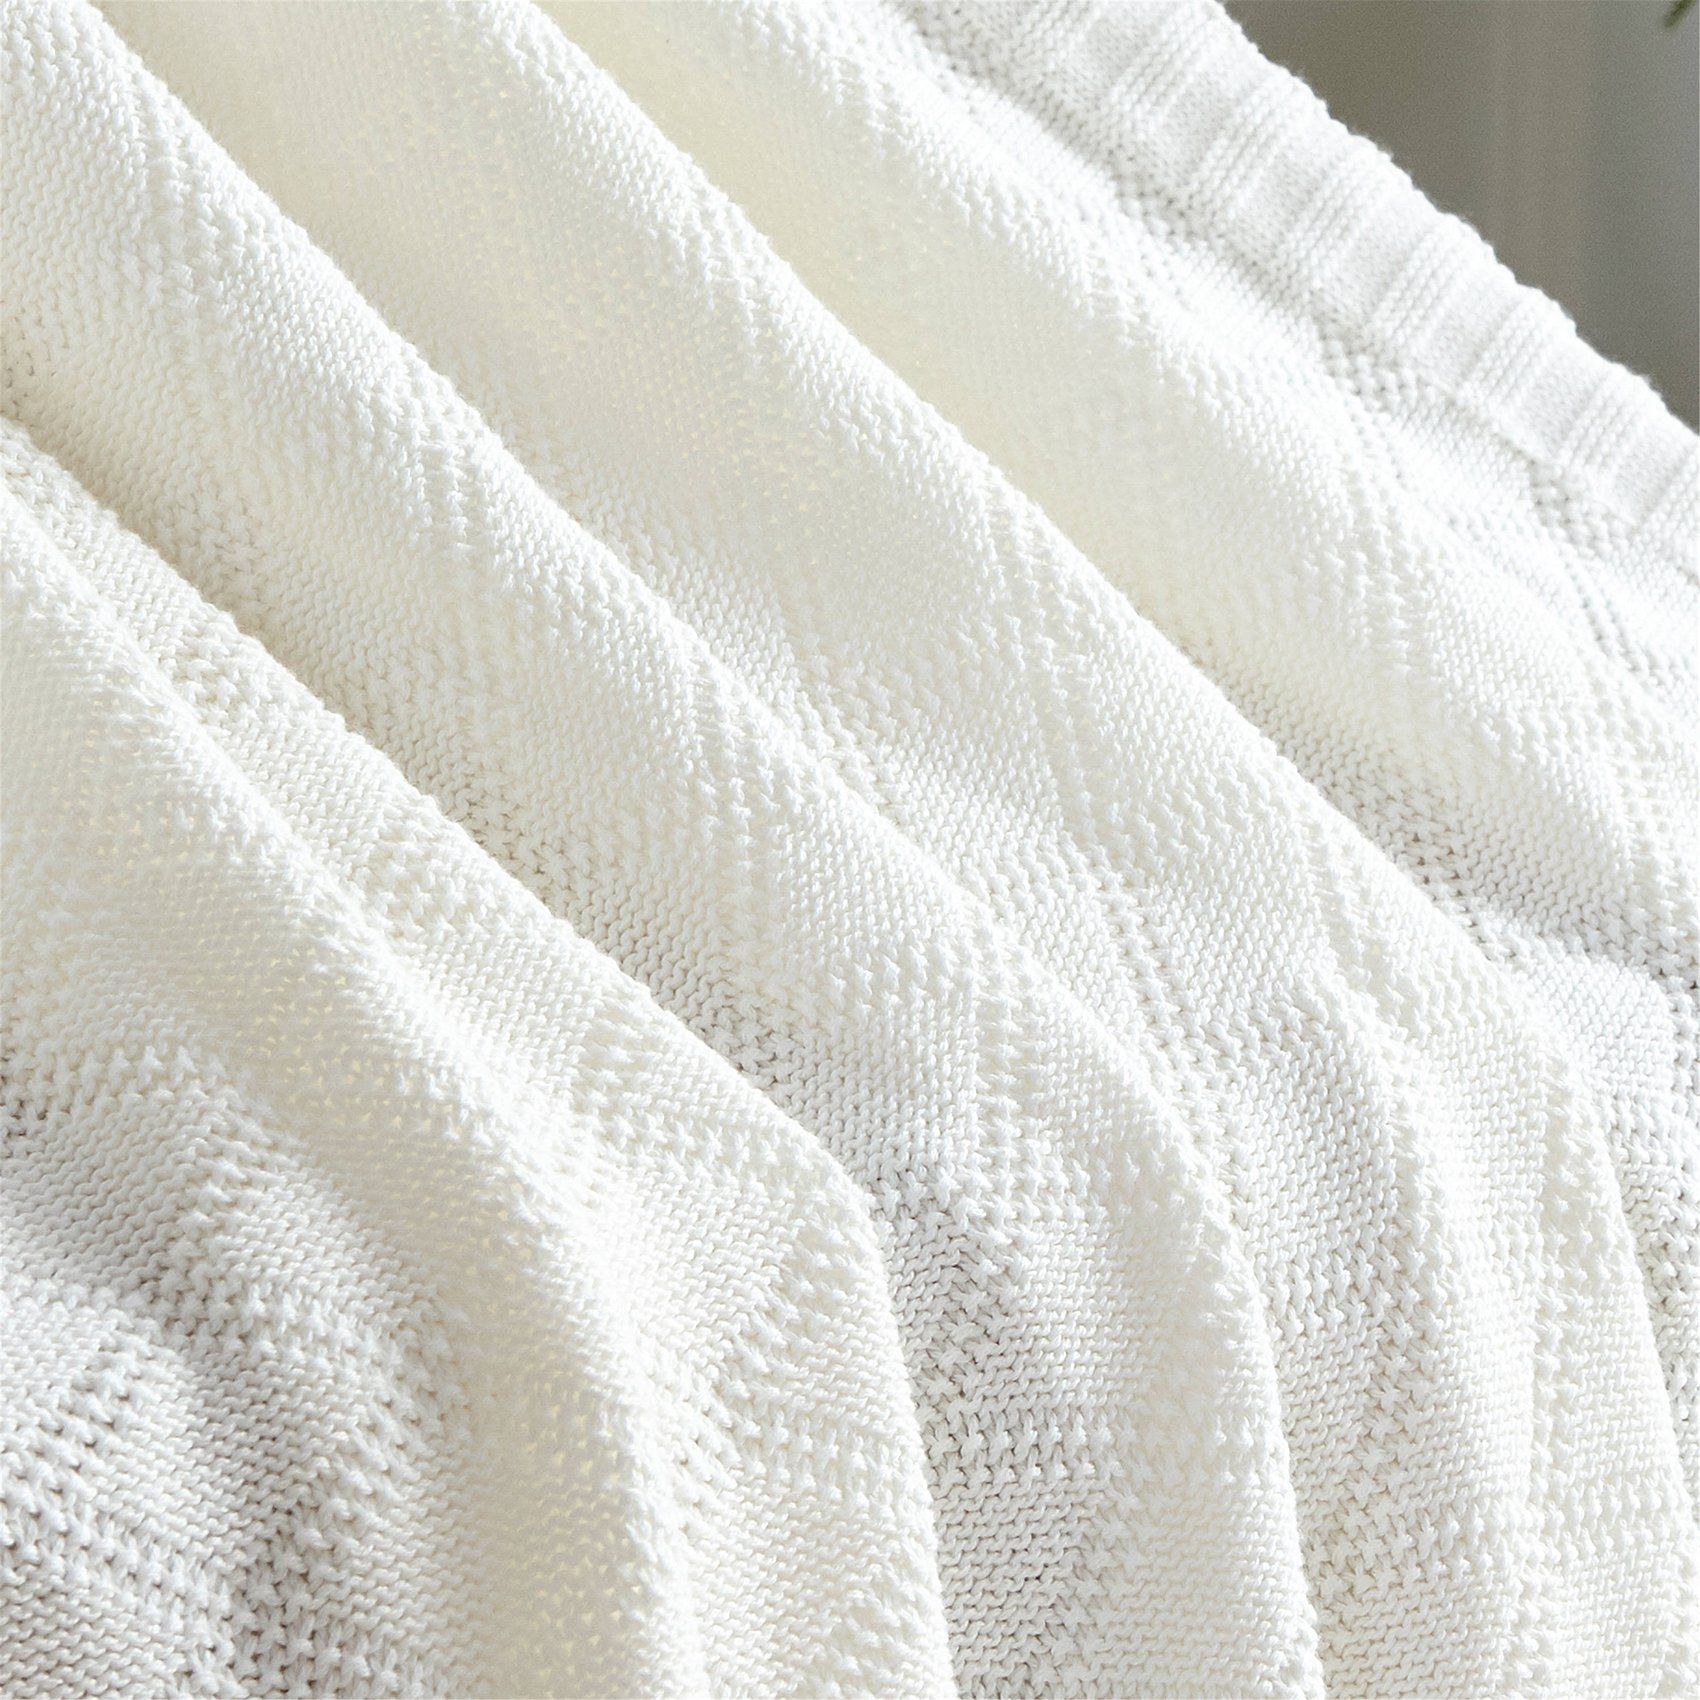 Longhui Bedding White Cotton Throw Blanket For Couch Sofa Chair Soft Warm Cable Knit Decorative Bla Cable Knit Throw Blanket Throw Blanket Cotton Throw Blanket Cotton throws for sofas